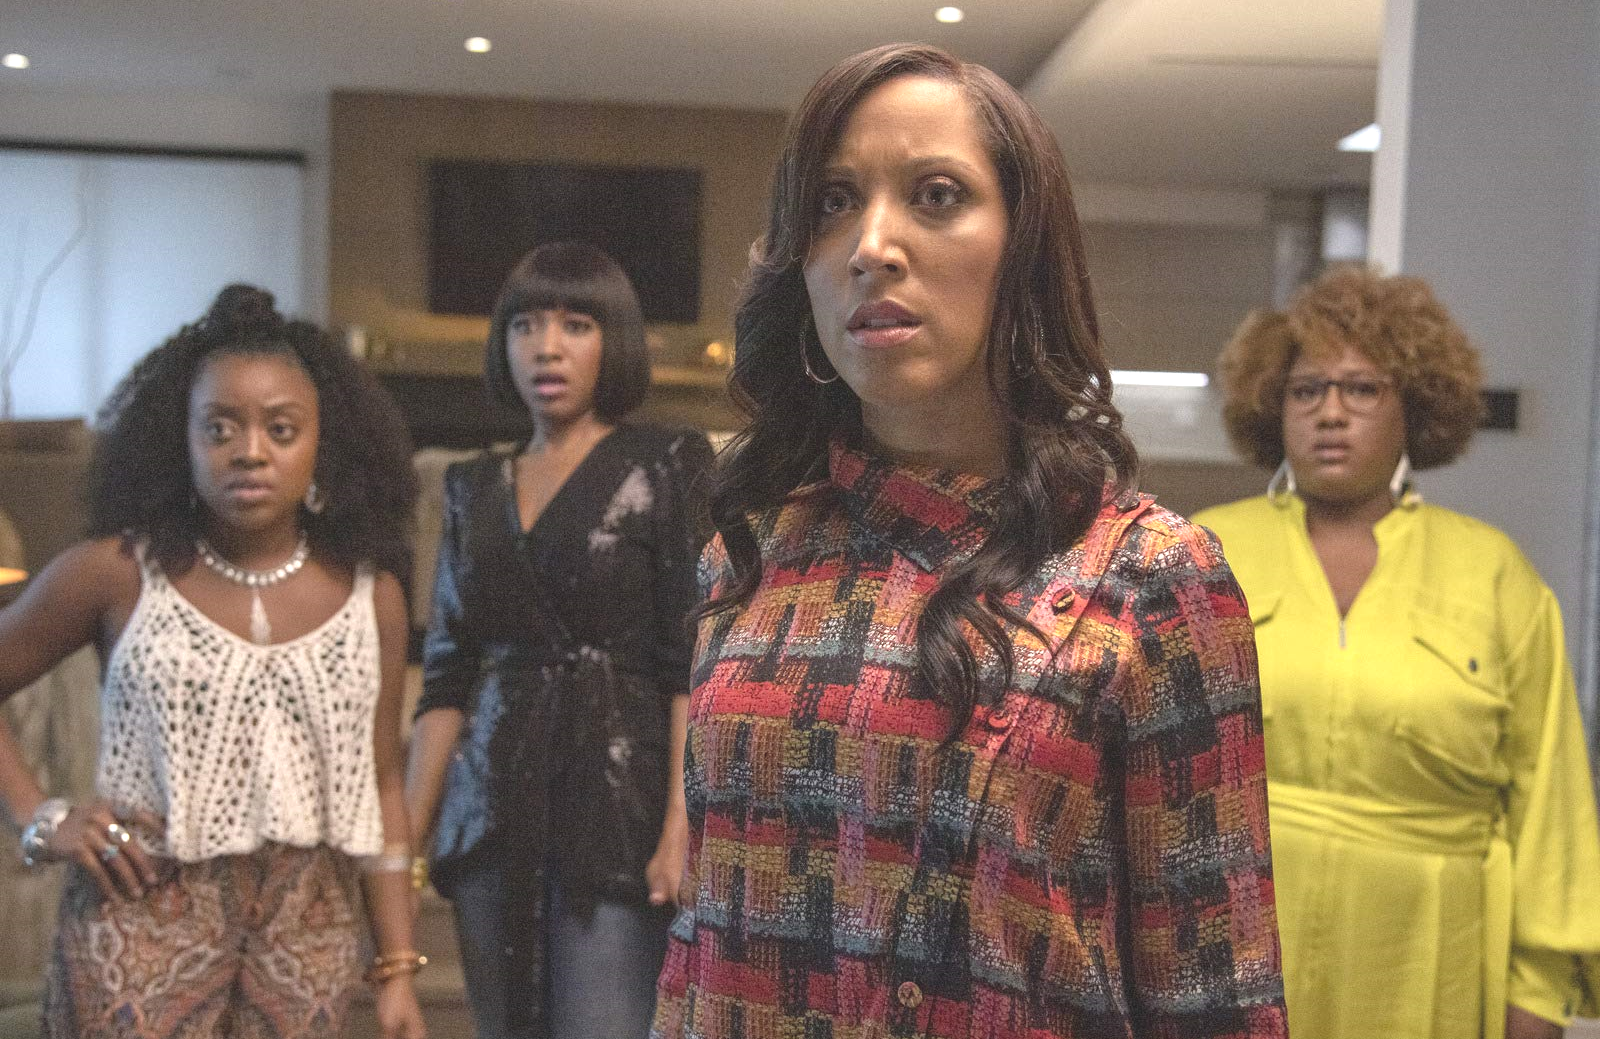 Quinta Brunson, Gabrielle Dennis, Robin Thede and Ashley Nicole Black star in A Black Lady Sketch Show. (HBO)